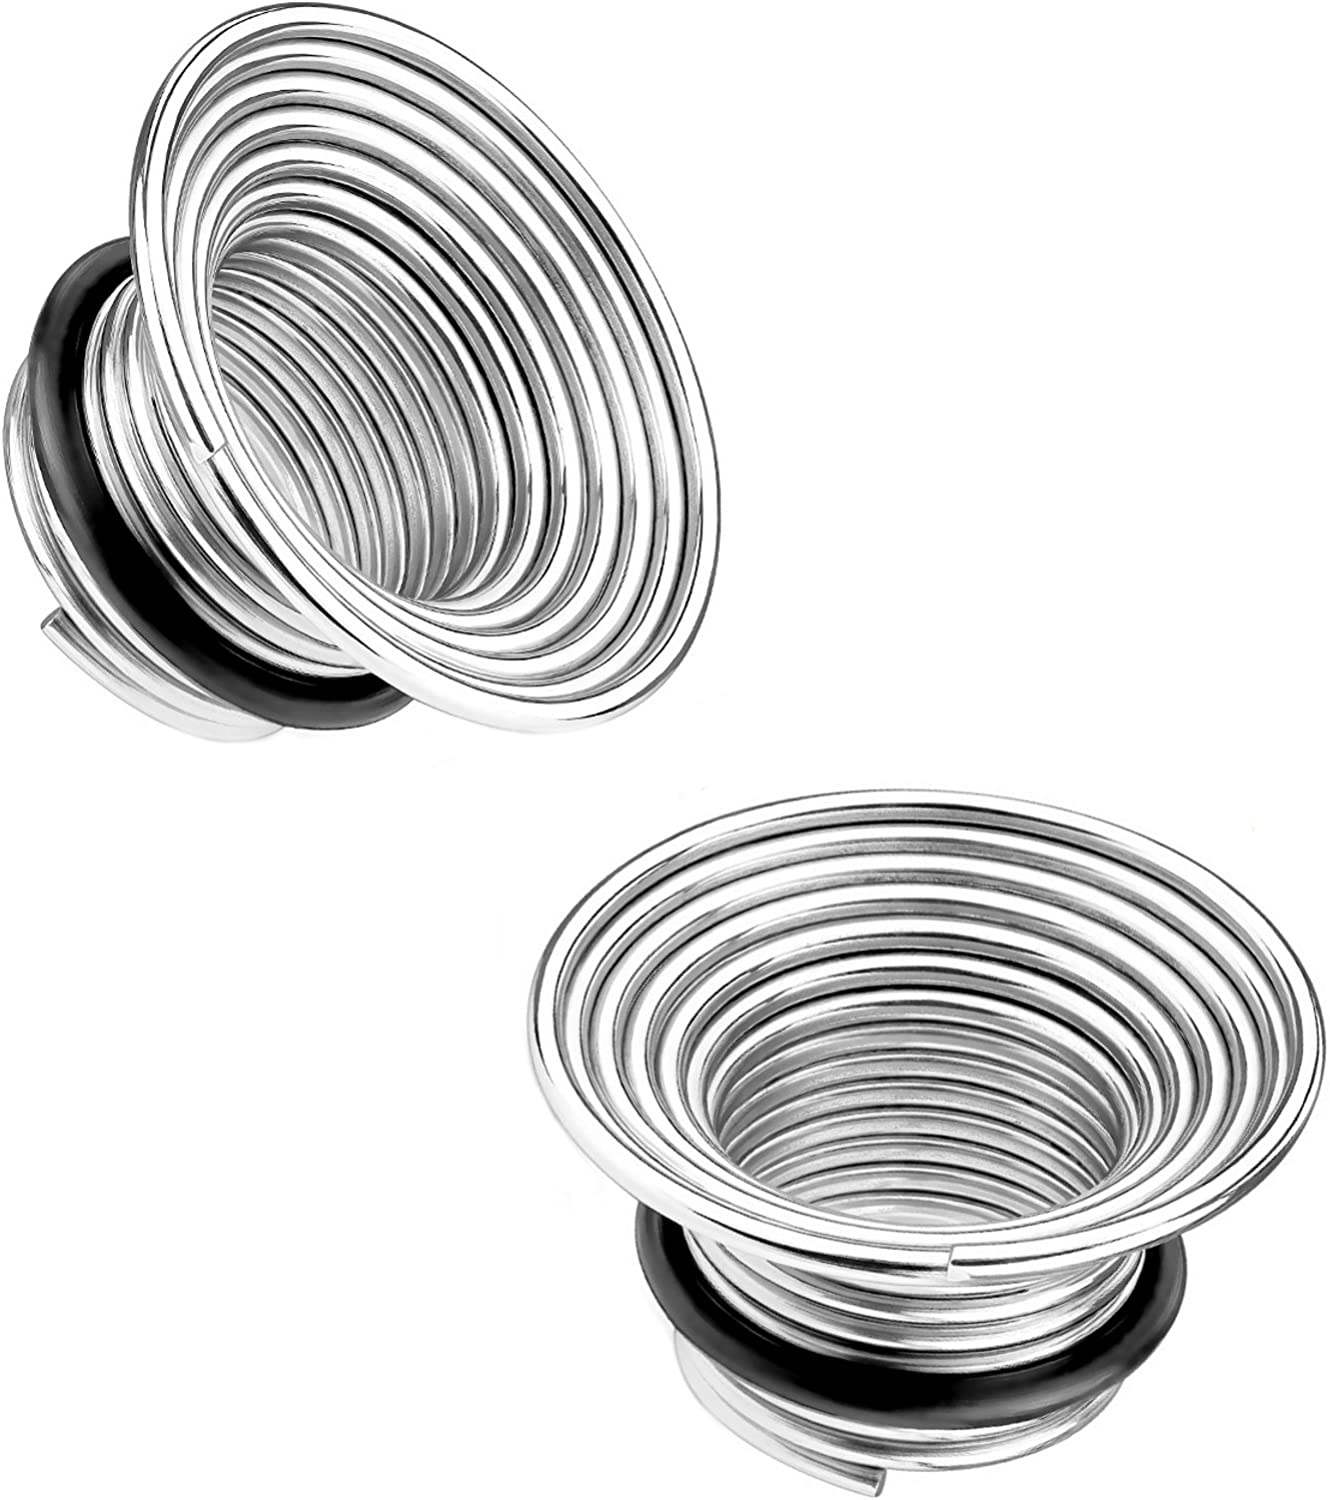 """316L STEEL FLEXIBLE SPRING COIL SINGLE FLARED EAR TUNNELS PLUGS 2G-5//8/"""" PAIR"""